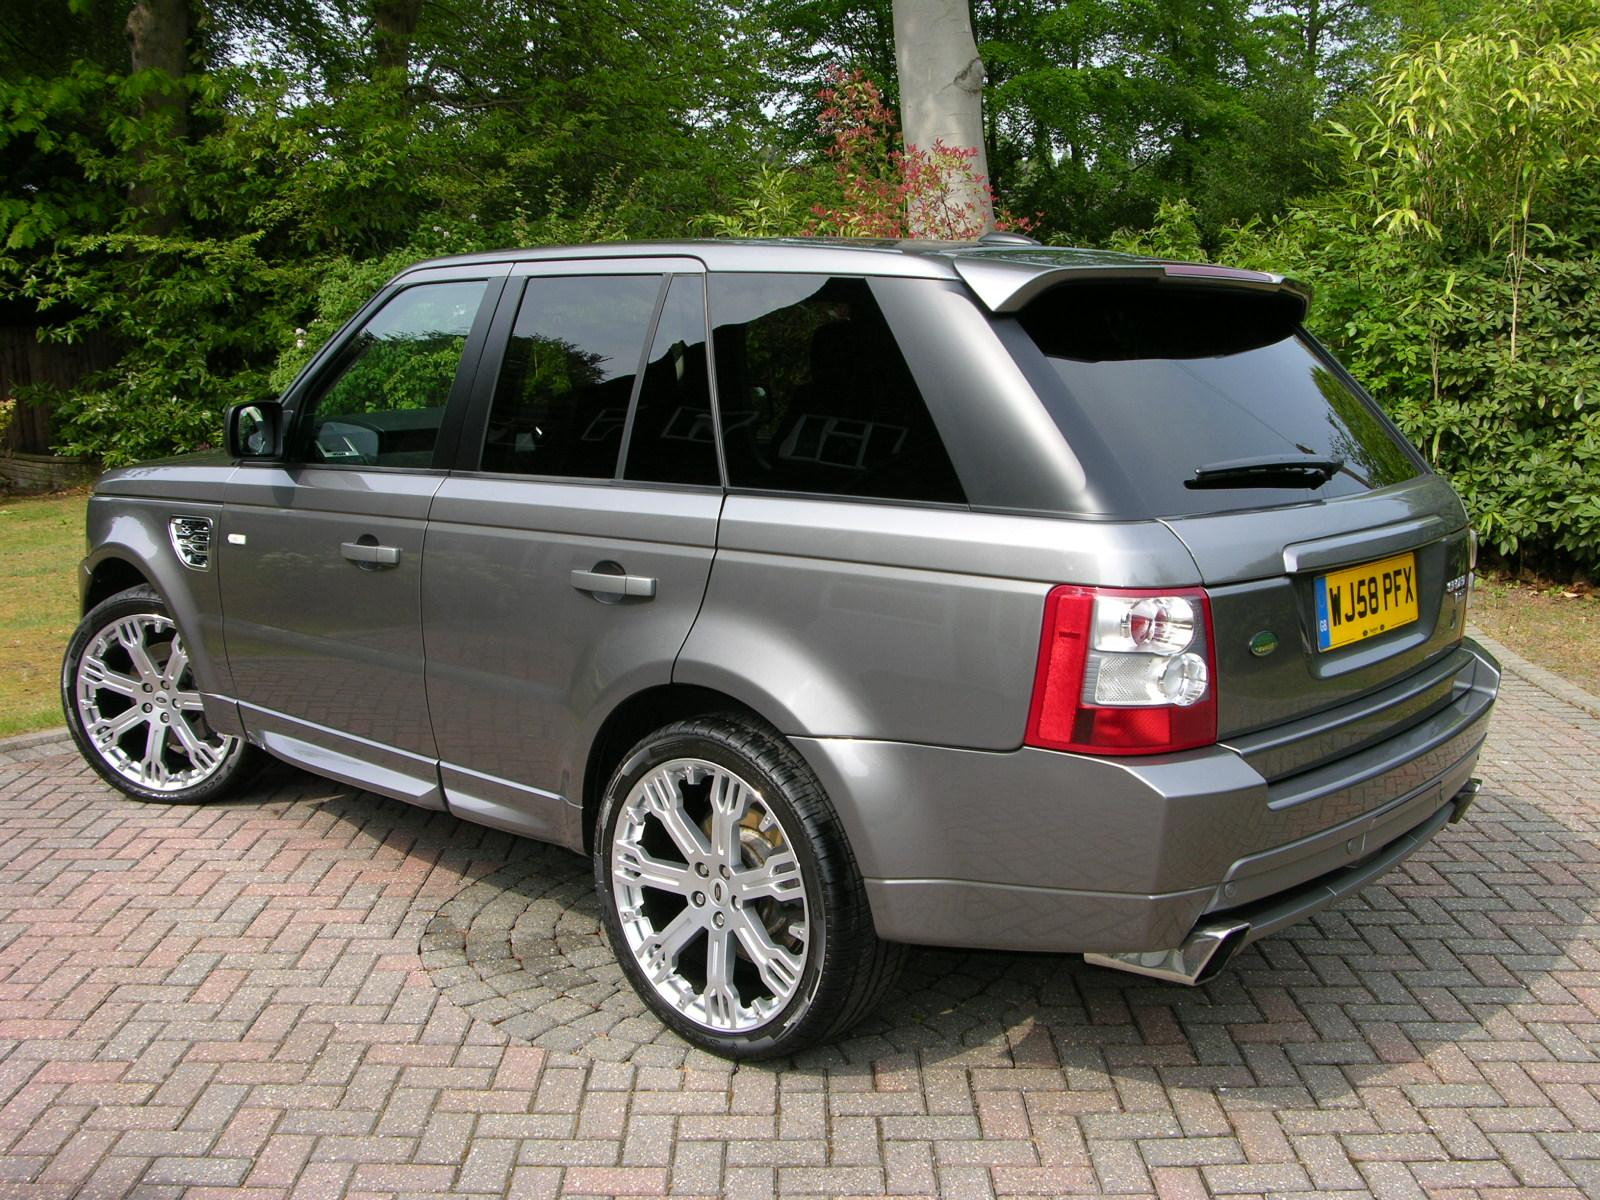 file 2008 range rover sport hst tdv8 flickr the car. Black Bedroom Furniture Sets. Home Design Ideas